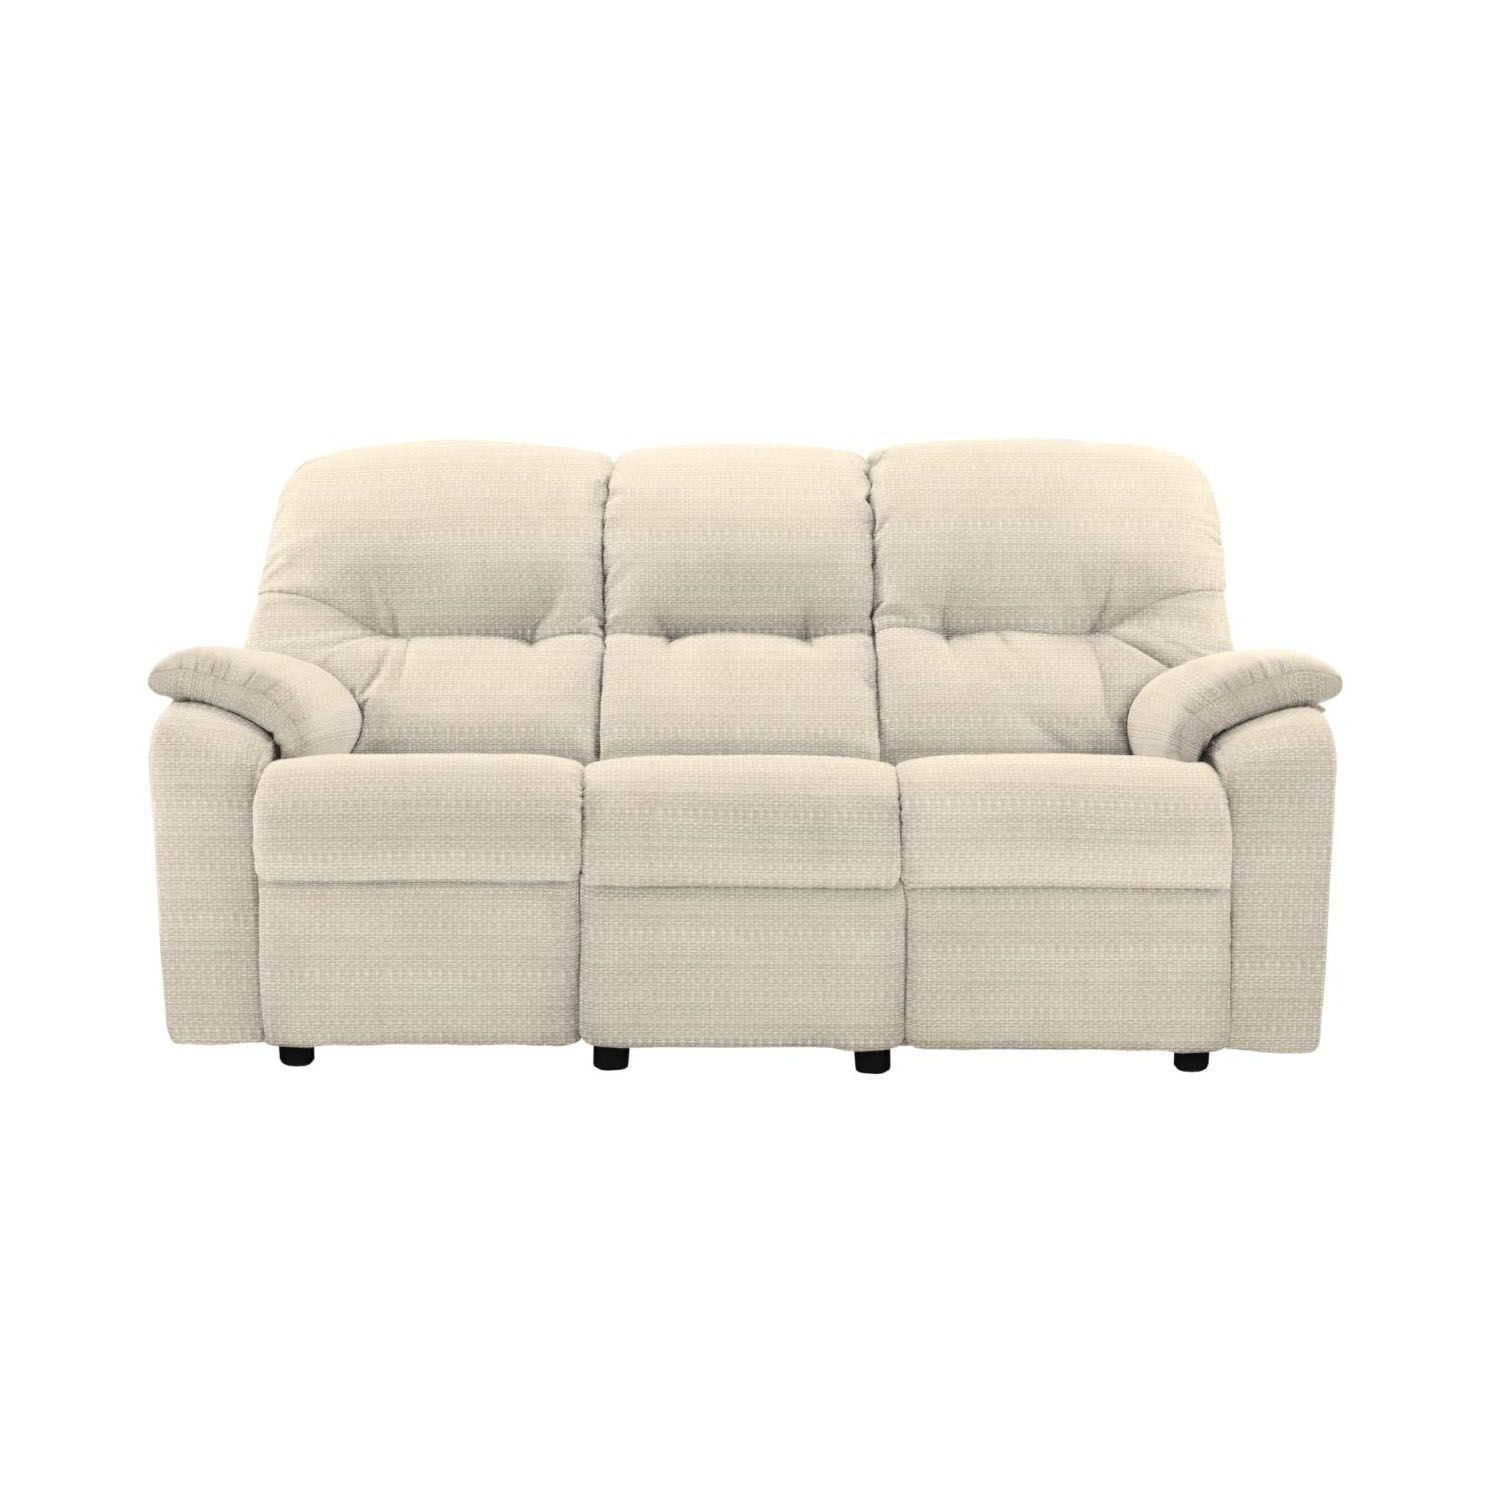 Image of G Plan Mistral 3 Seater Fabric Sofa, Small